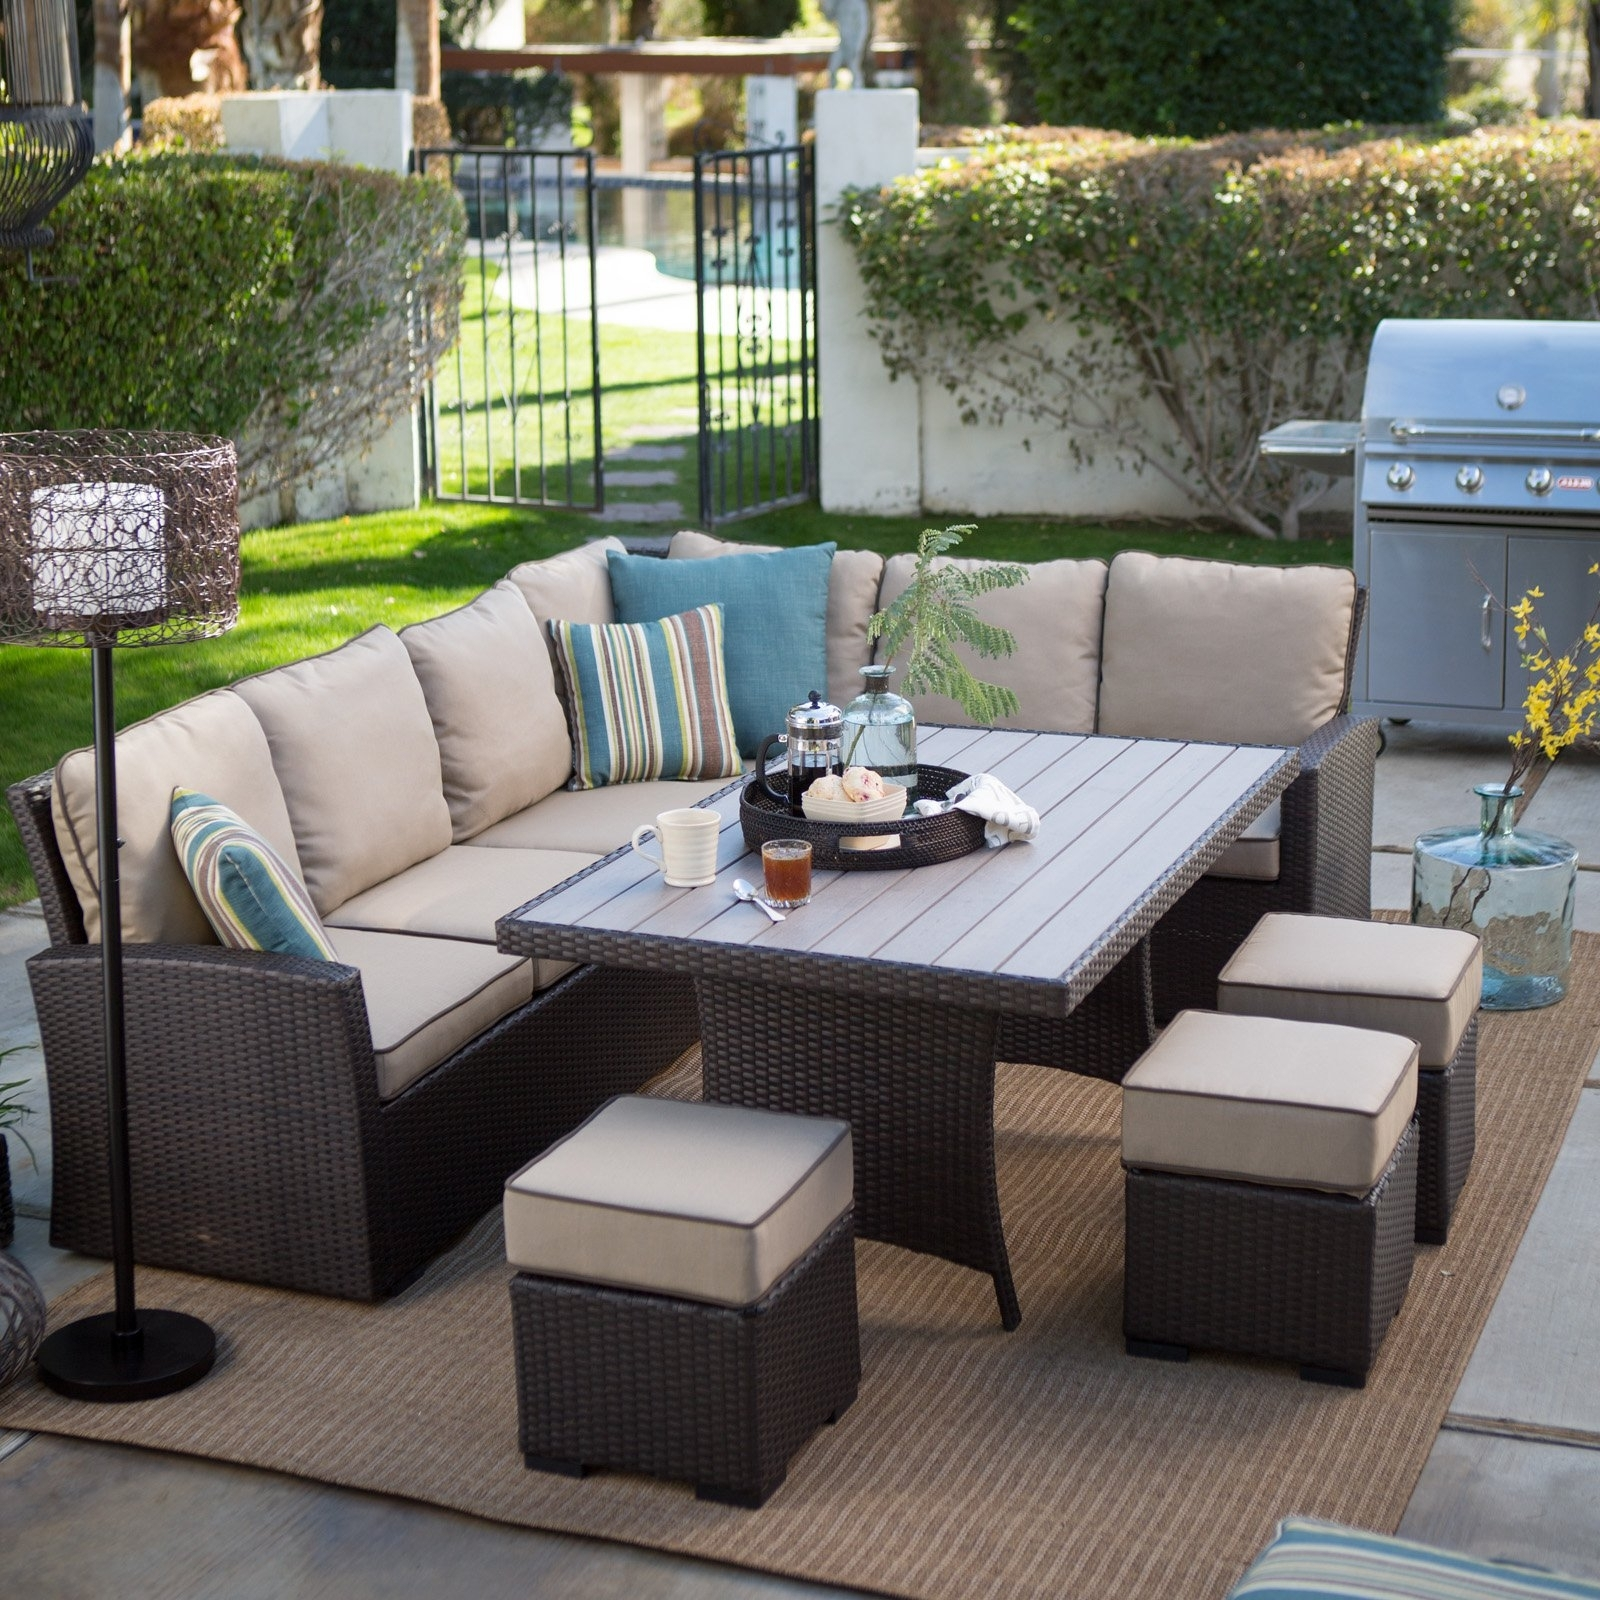 Belham Living Monticello All Weather Wicker Sofa Sectional Patio In Most Popular Resin Conversation Patio Sets (View 14 of 15)